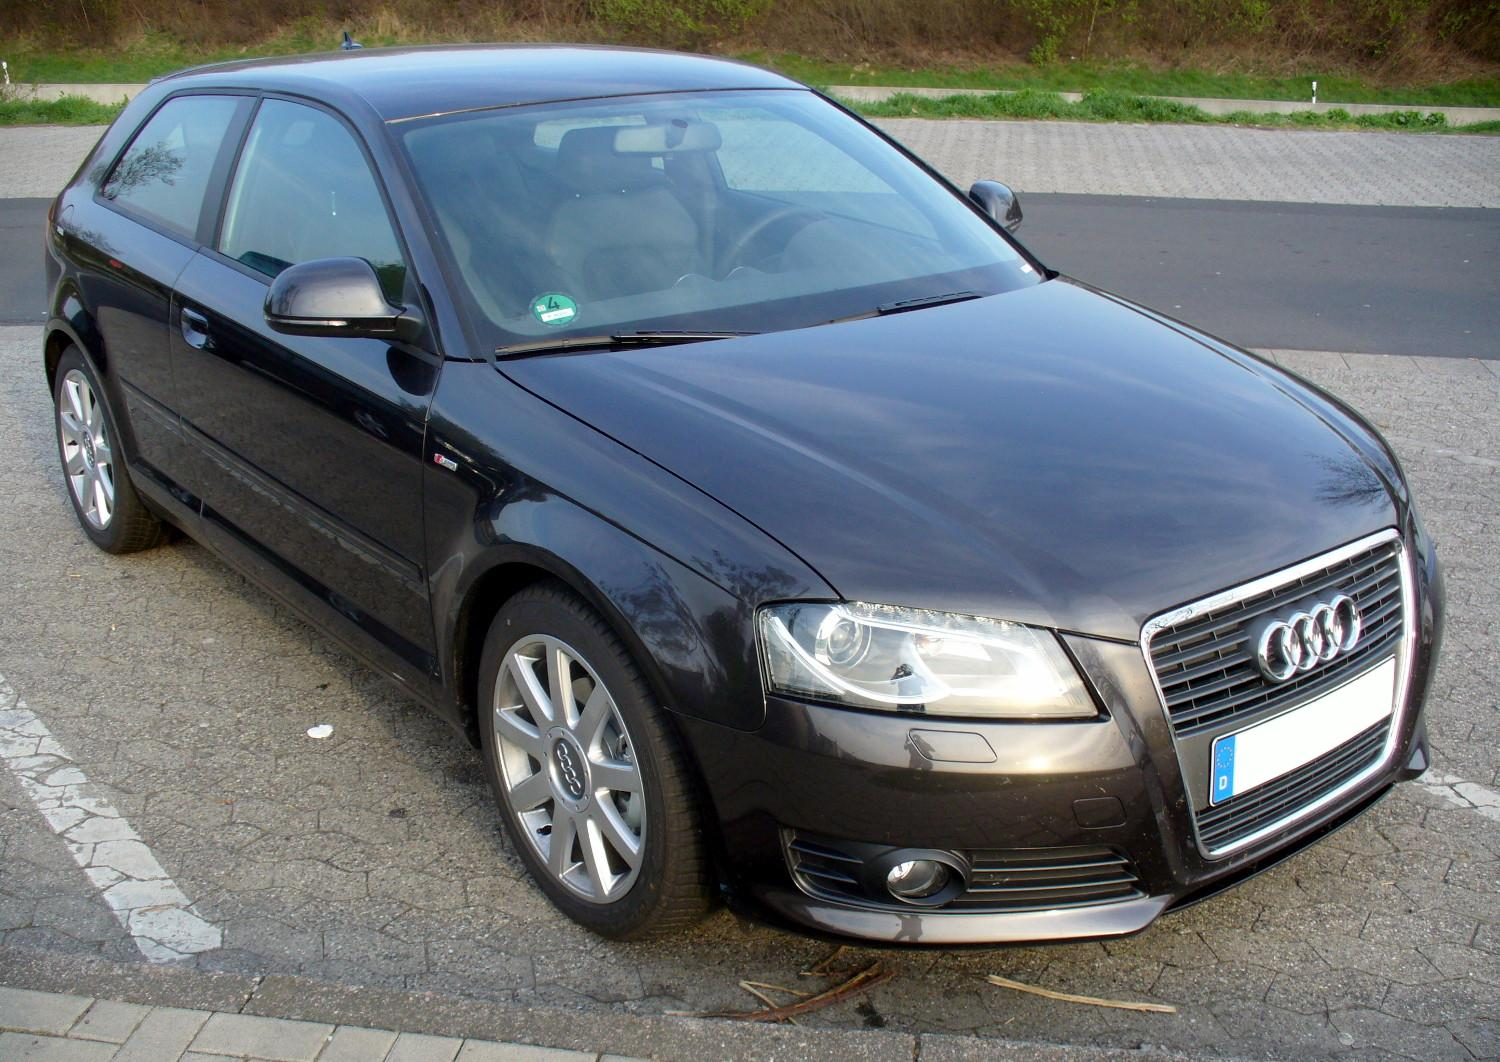 file audi a3 8p ambition s line 2 0 tdi lavagrau facelift jpg. Black Bedroom Furniture Sets. Home Design Ideas